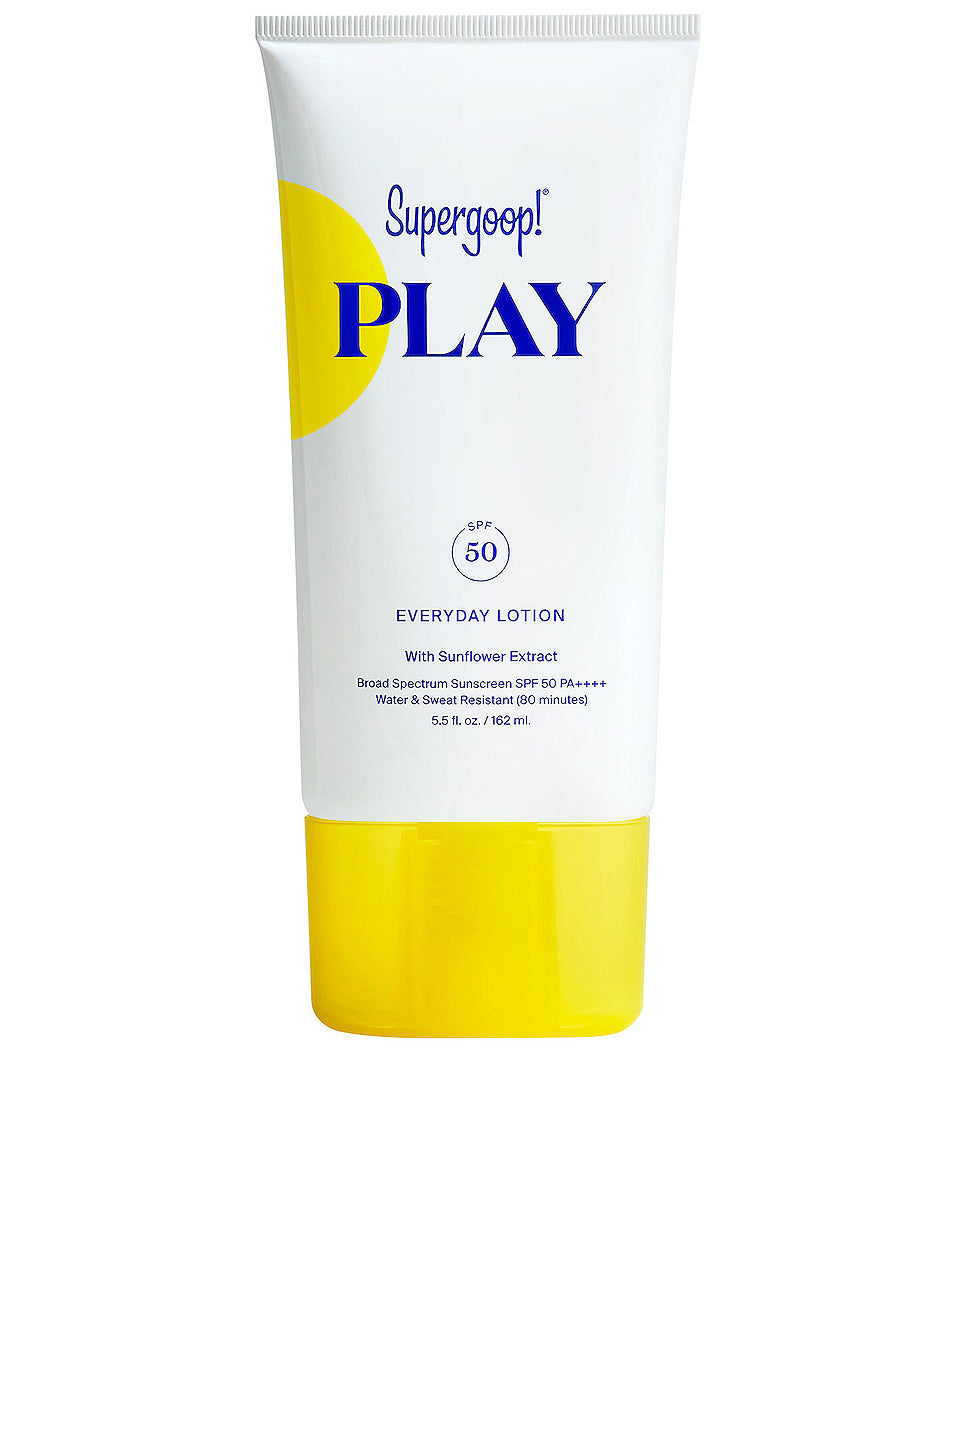 PLAY Everyday Lotion SPF 50 with Sunflower Extract, 5.5oz